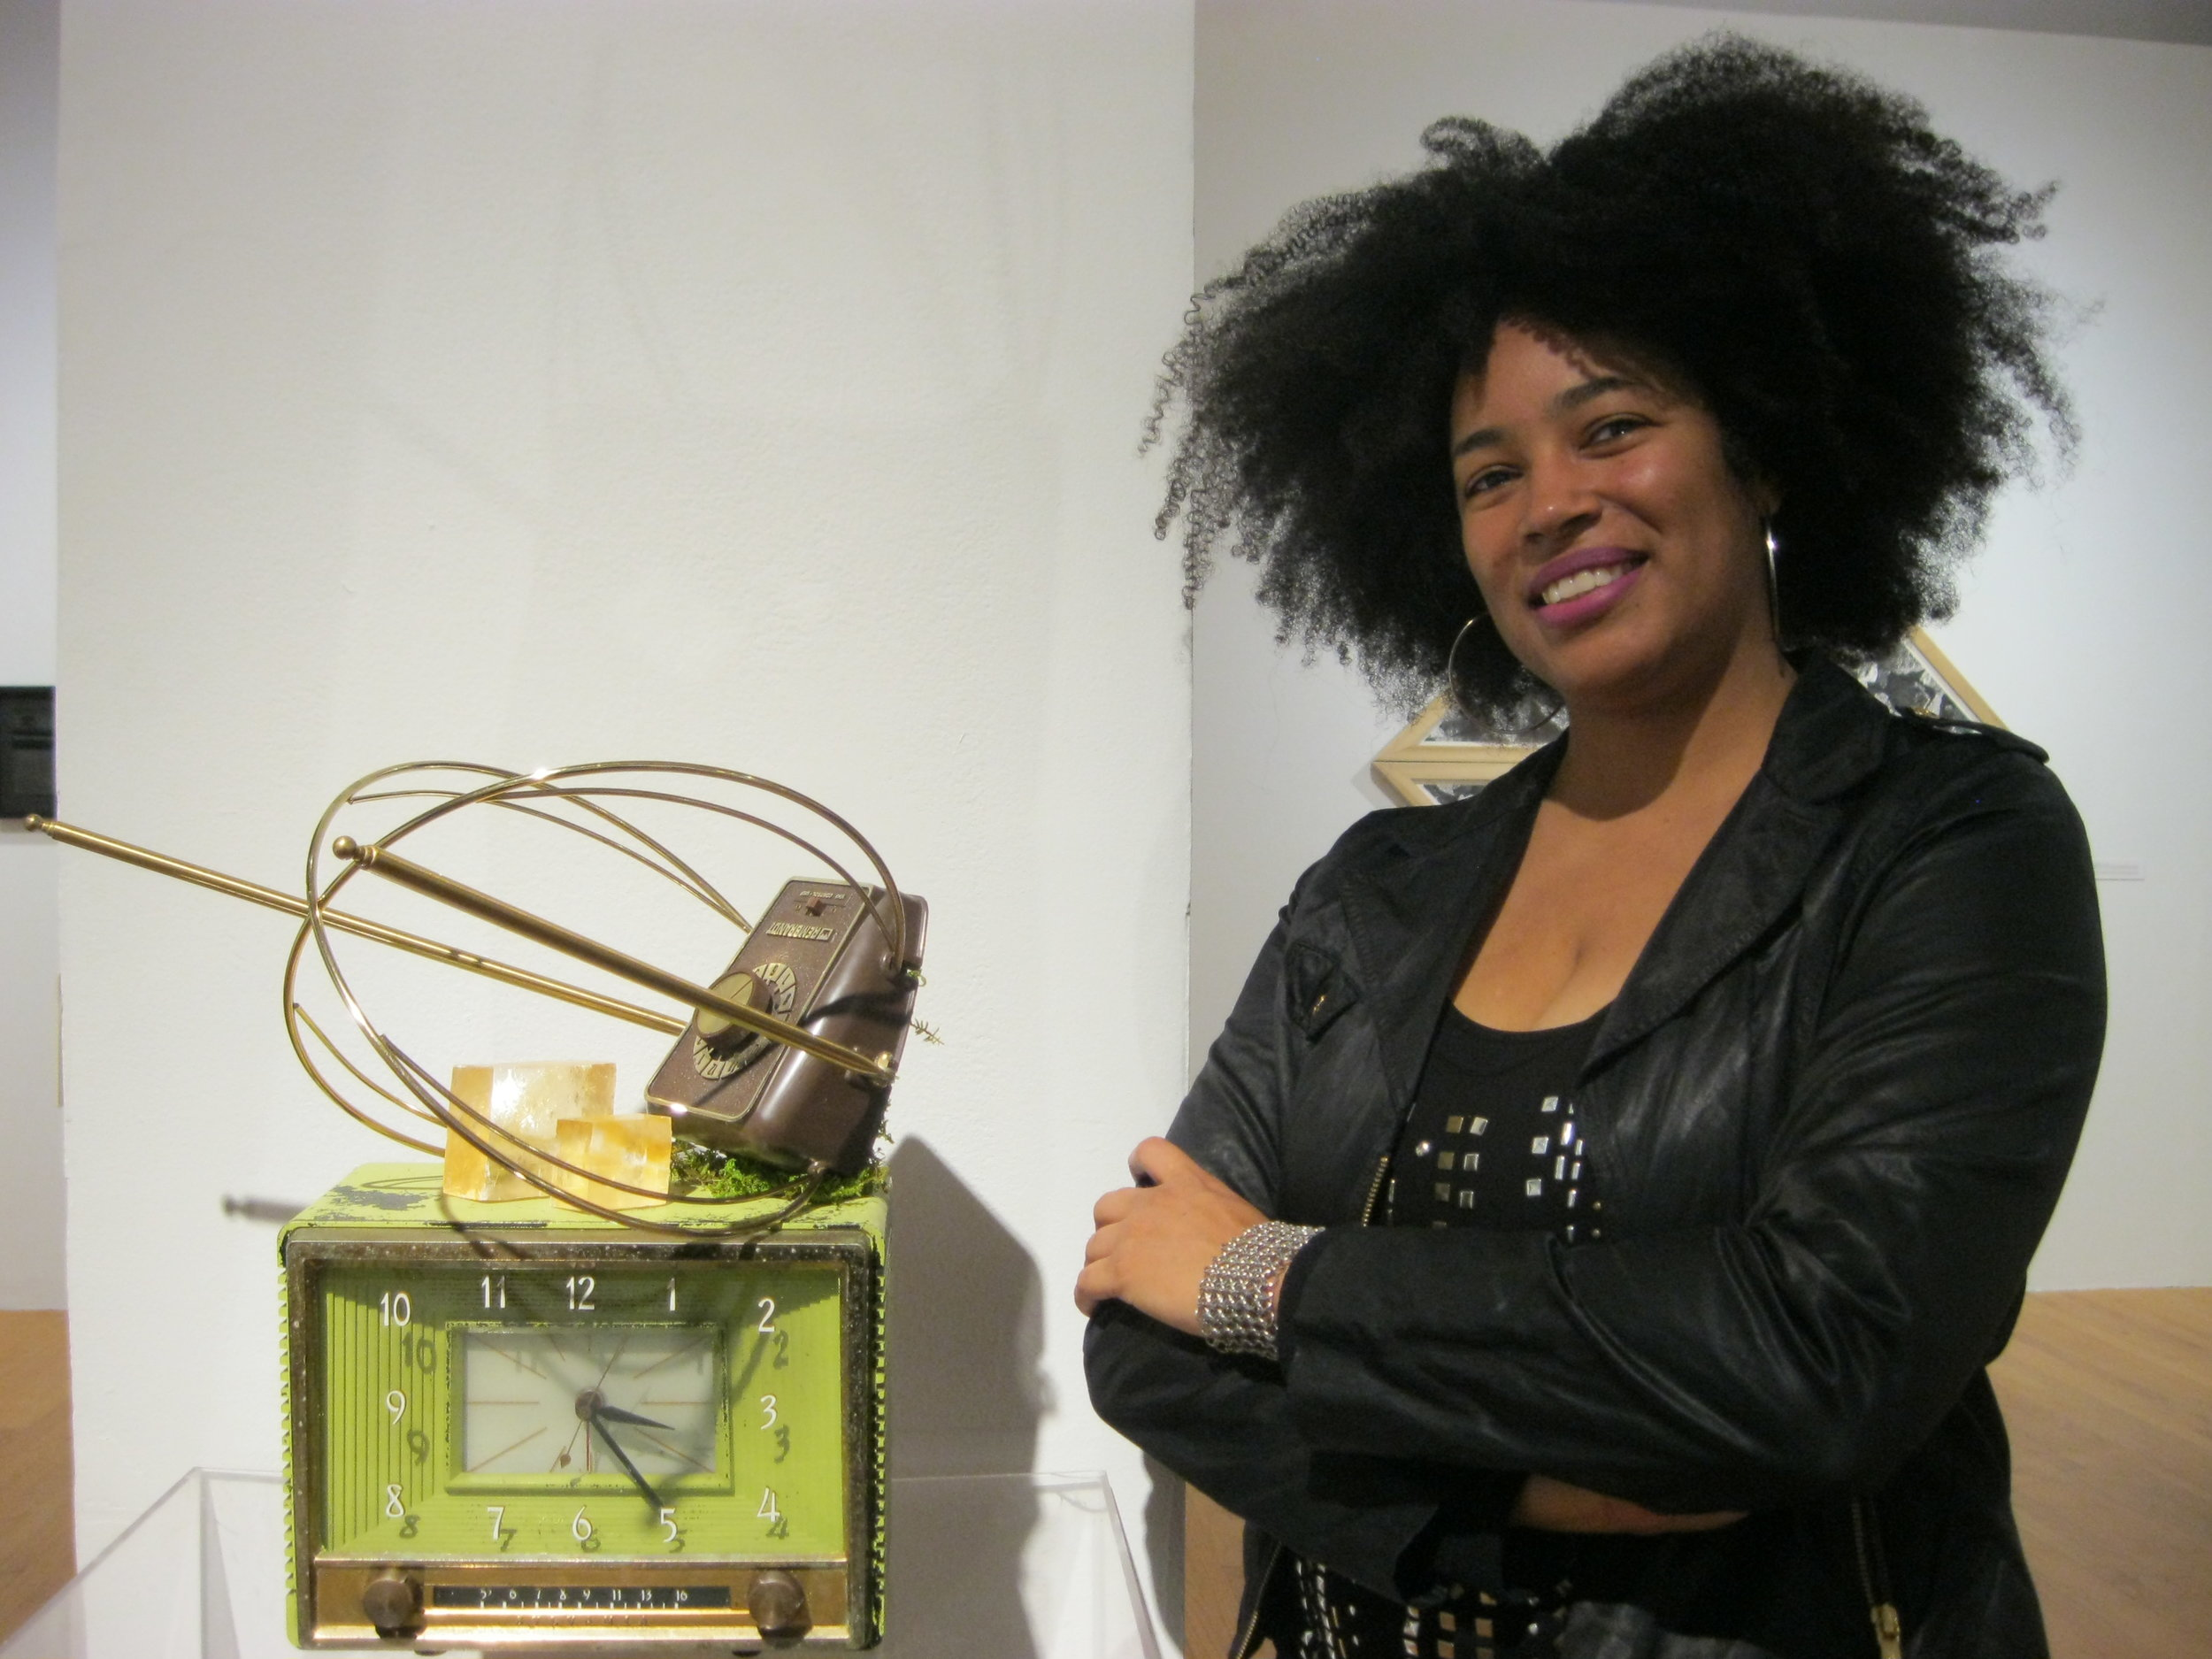 Rhonda with one of her sculptures in the Silos exhibition, at Glass Curtain Gallery, Columbia College.